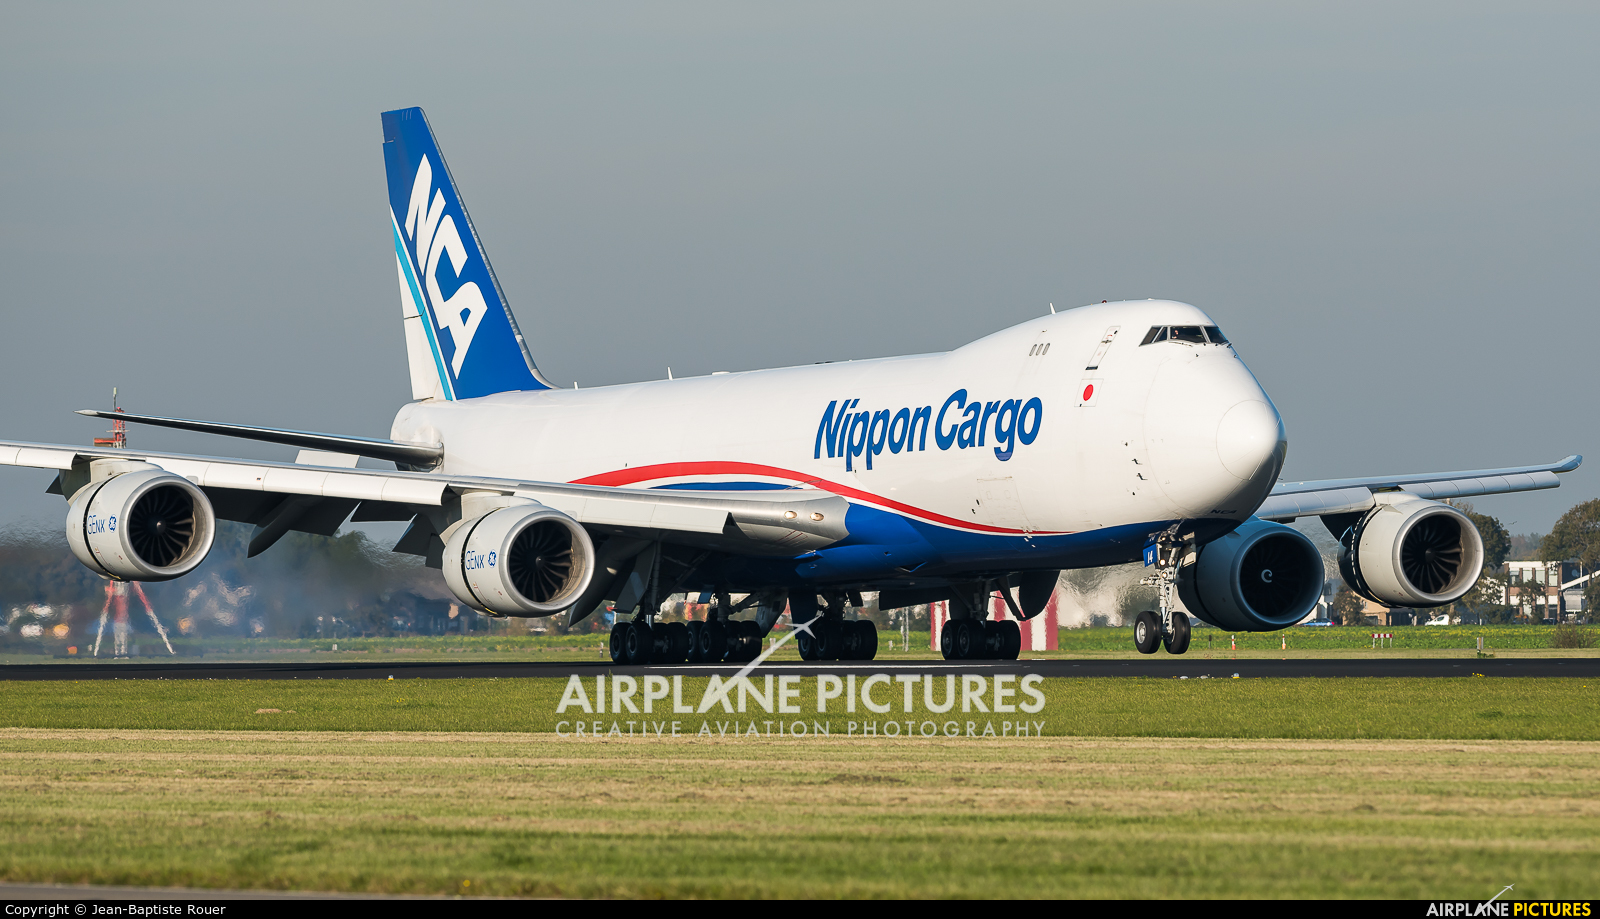 Nippon Cargo Airlines JA14KZ aircraft at Amsterdam - Schiphol